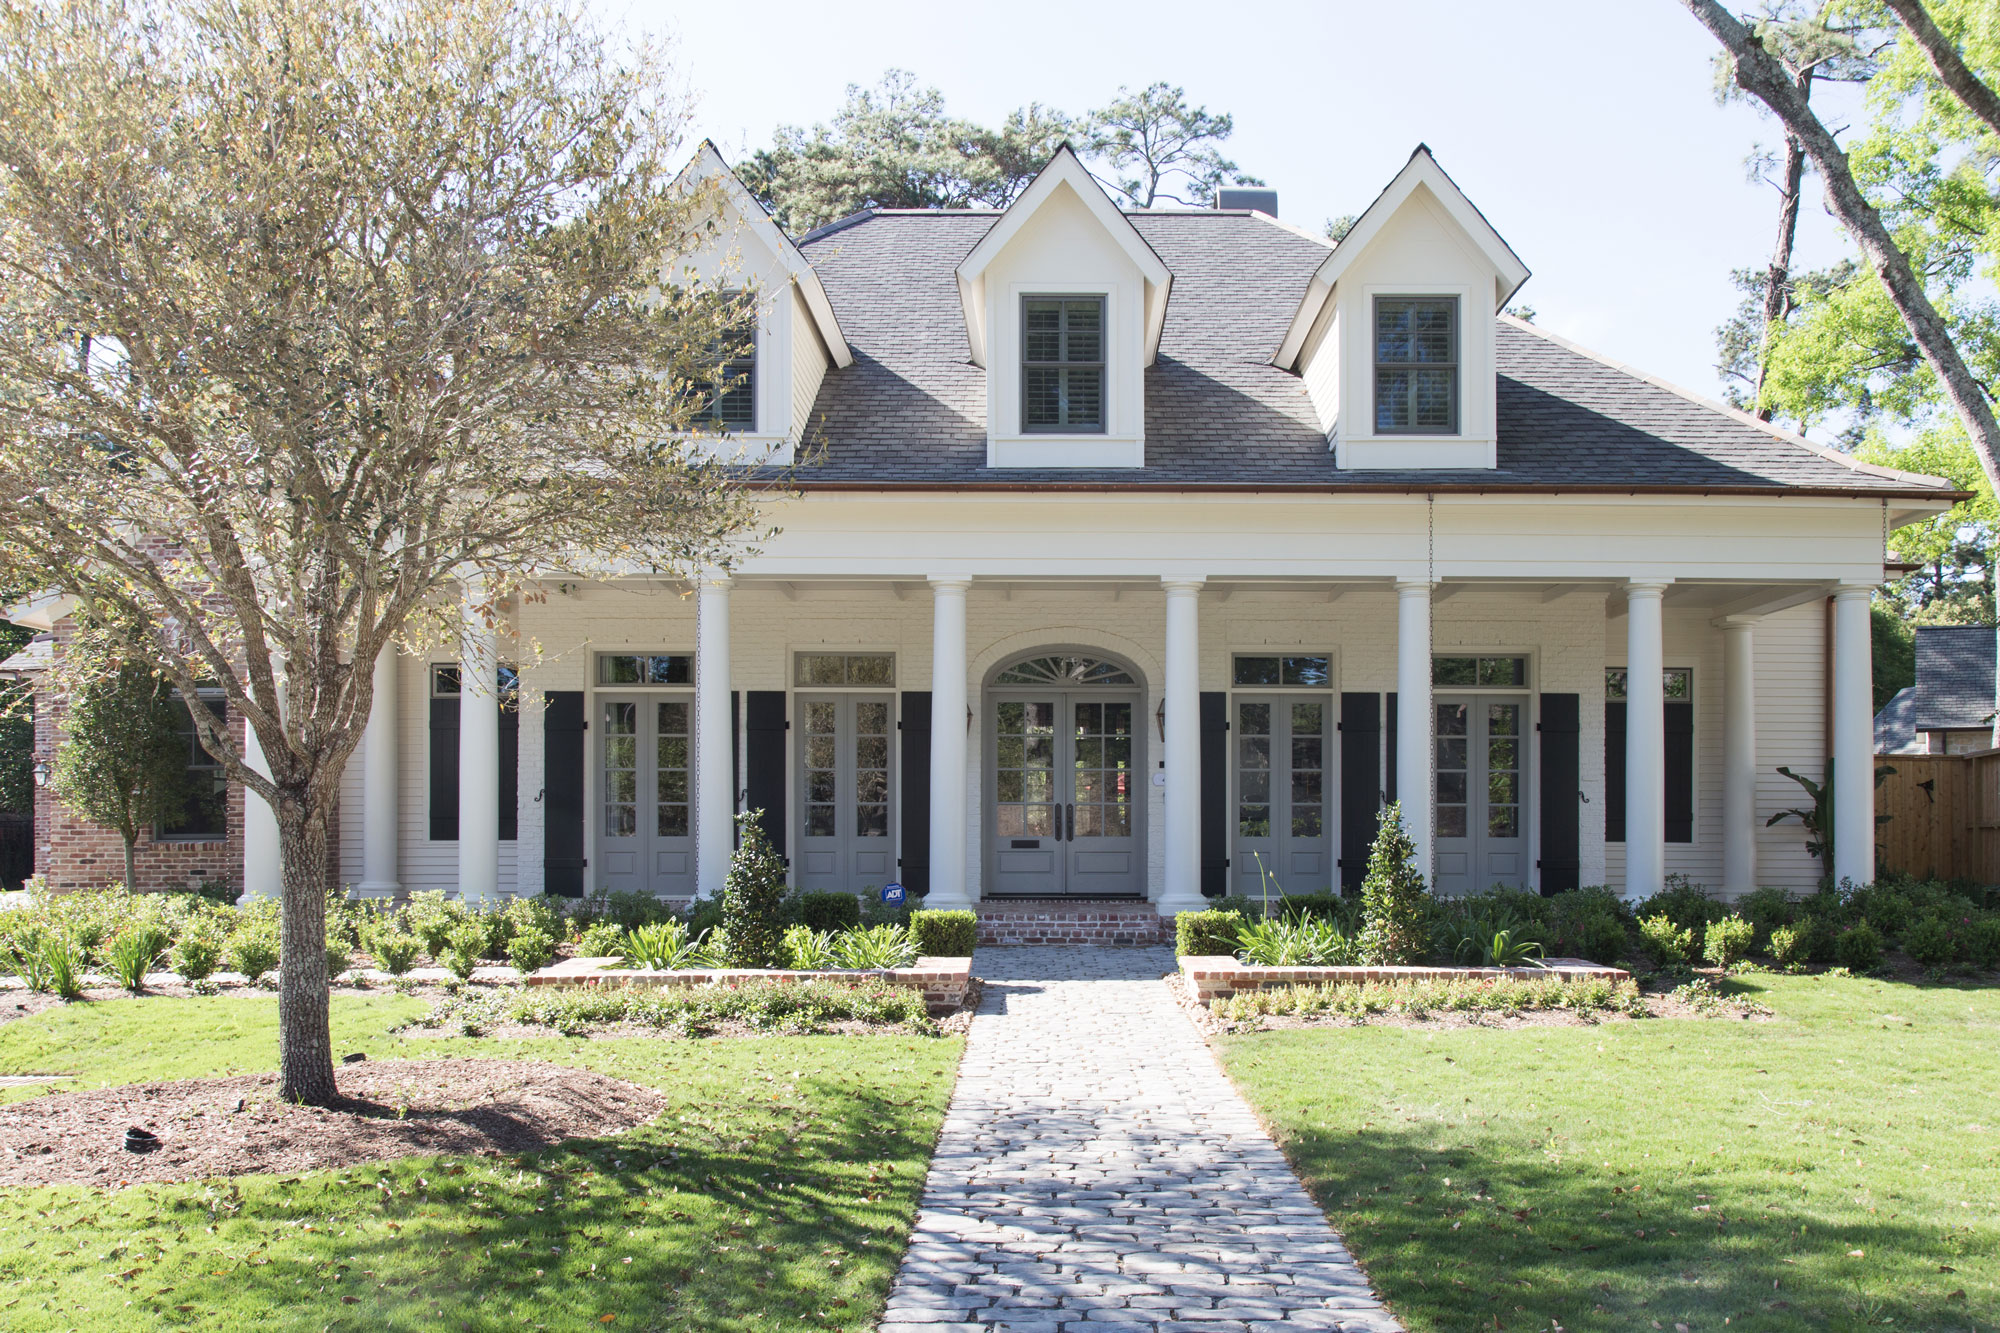 """Colonia-style home featuring front doors painted in Benjamin Moore's """"Cape May Cobblestone"""" shade."""